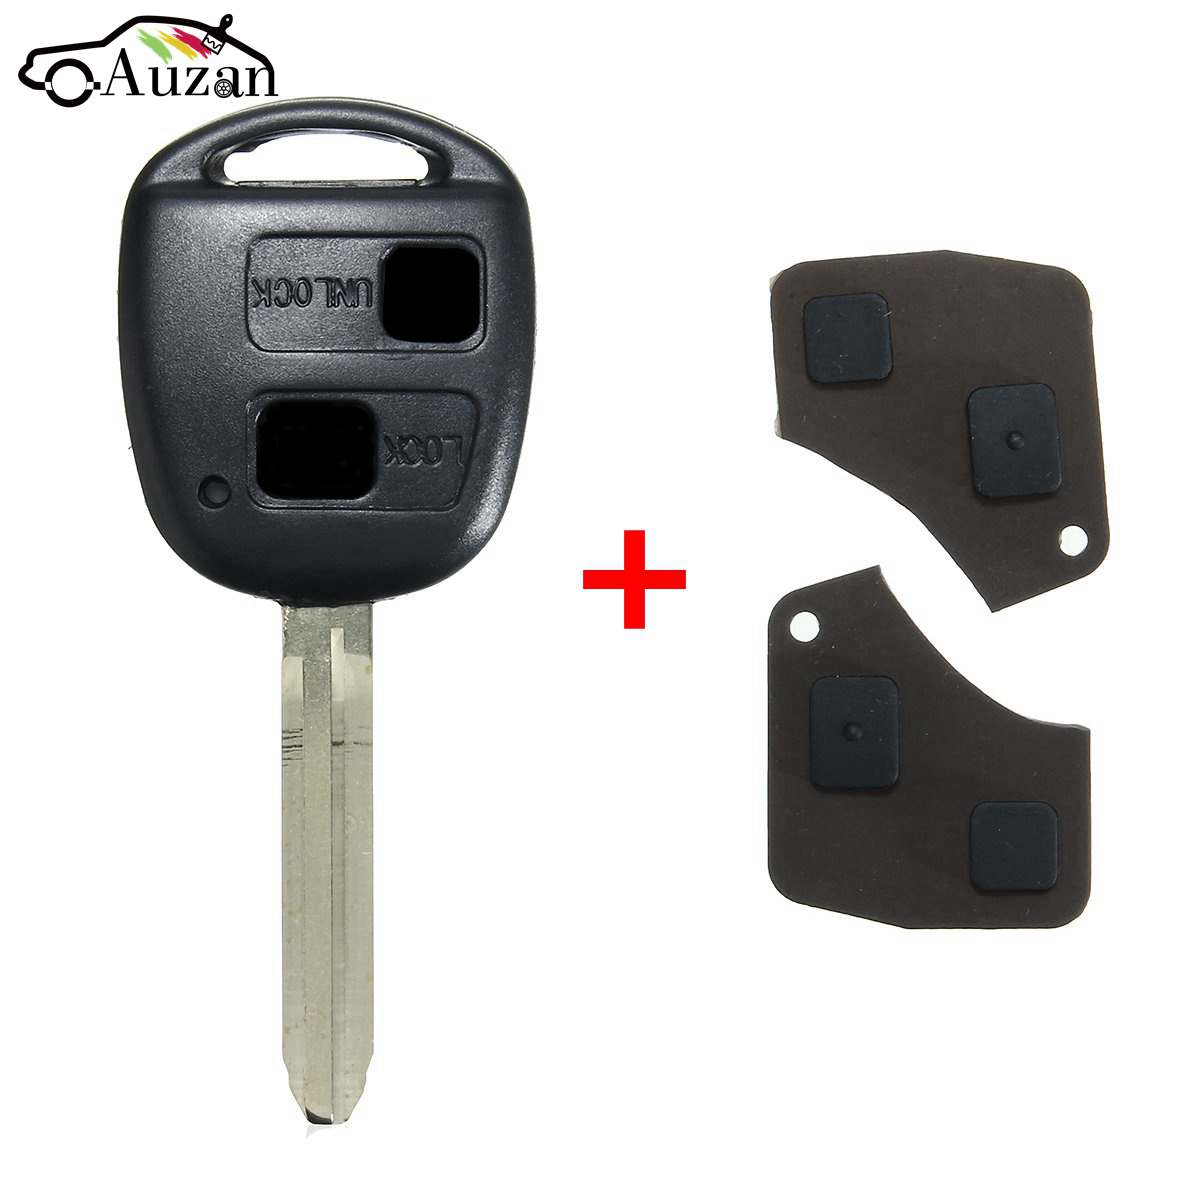 1 Set 2 Button Remote Key Shell Case & Pad For Toyota RAV4 Camry Corolla Prado Avalon литой диск replikey rk l18b toyota rav4 camry 7x17 5x114 3 d60 1 et45 s